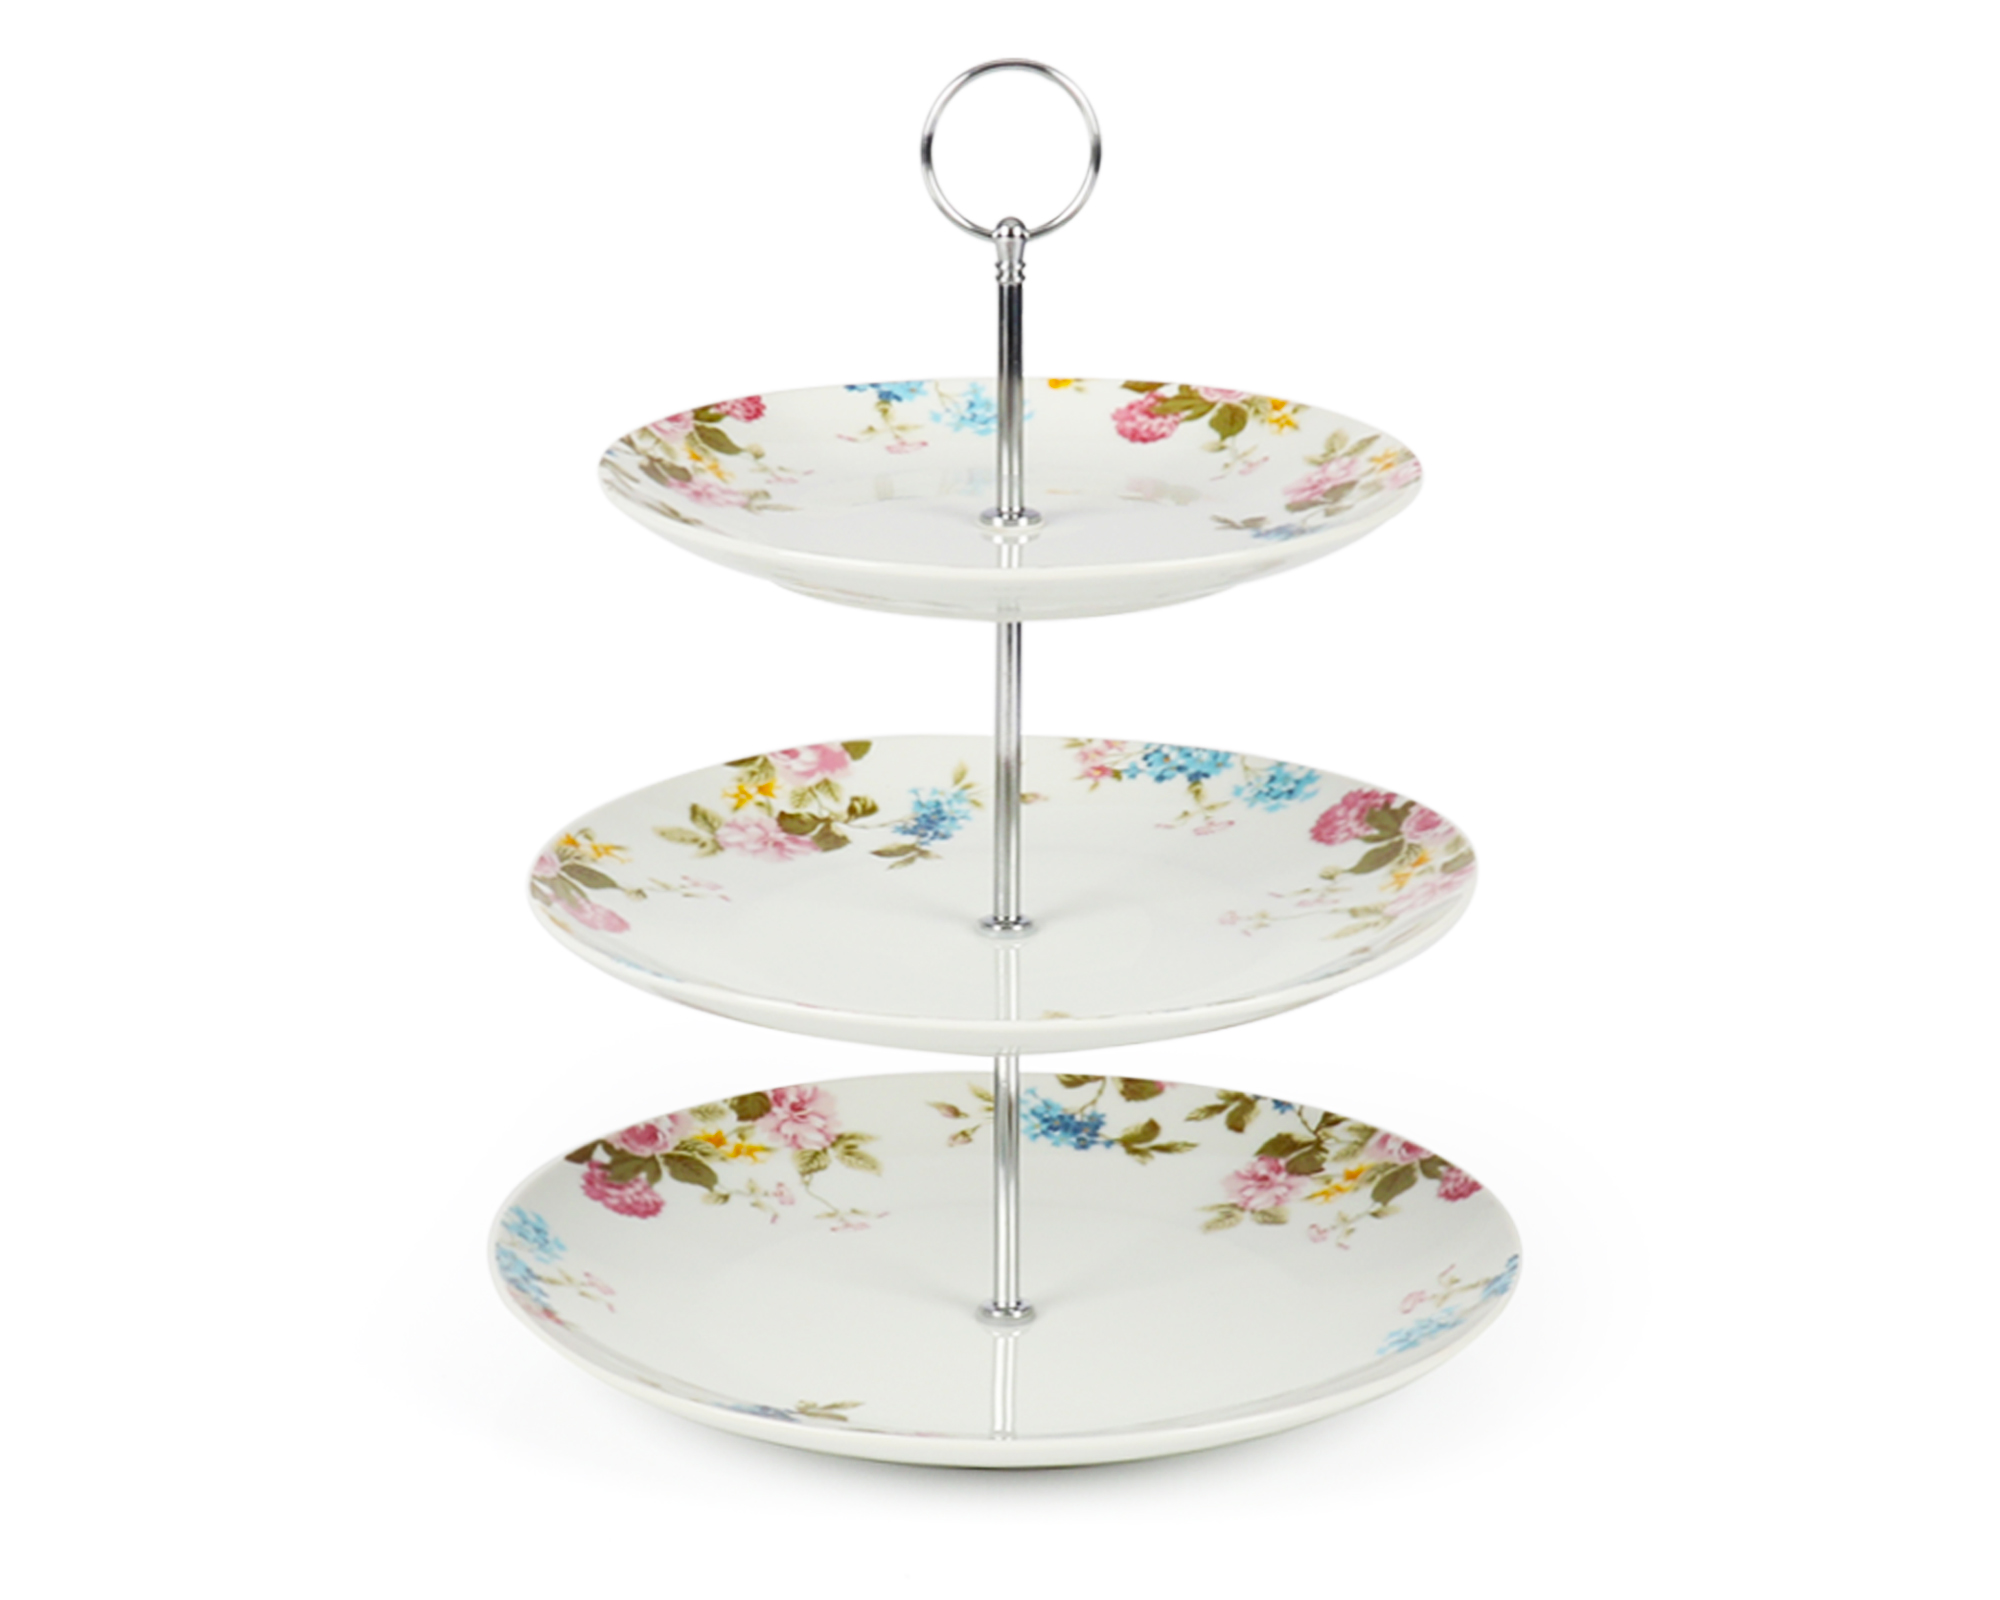 3-Tier porcelain cake stand decal pattern